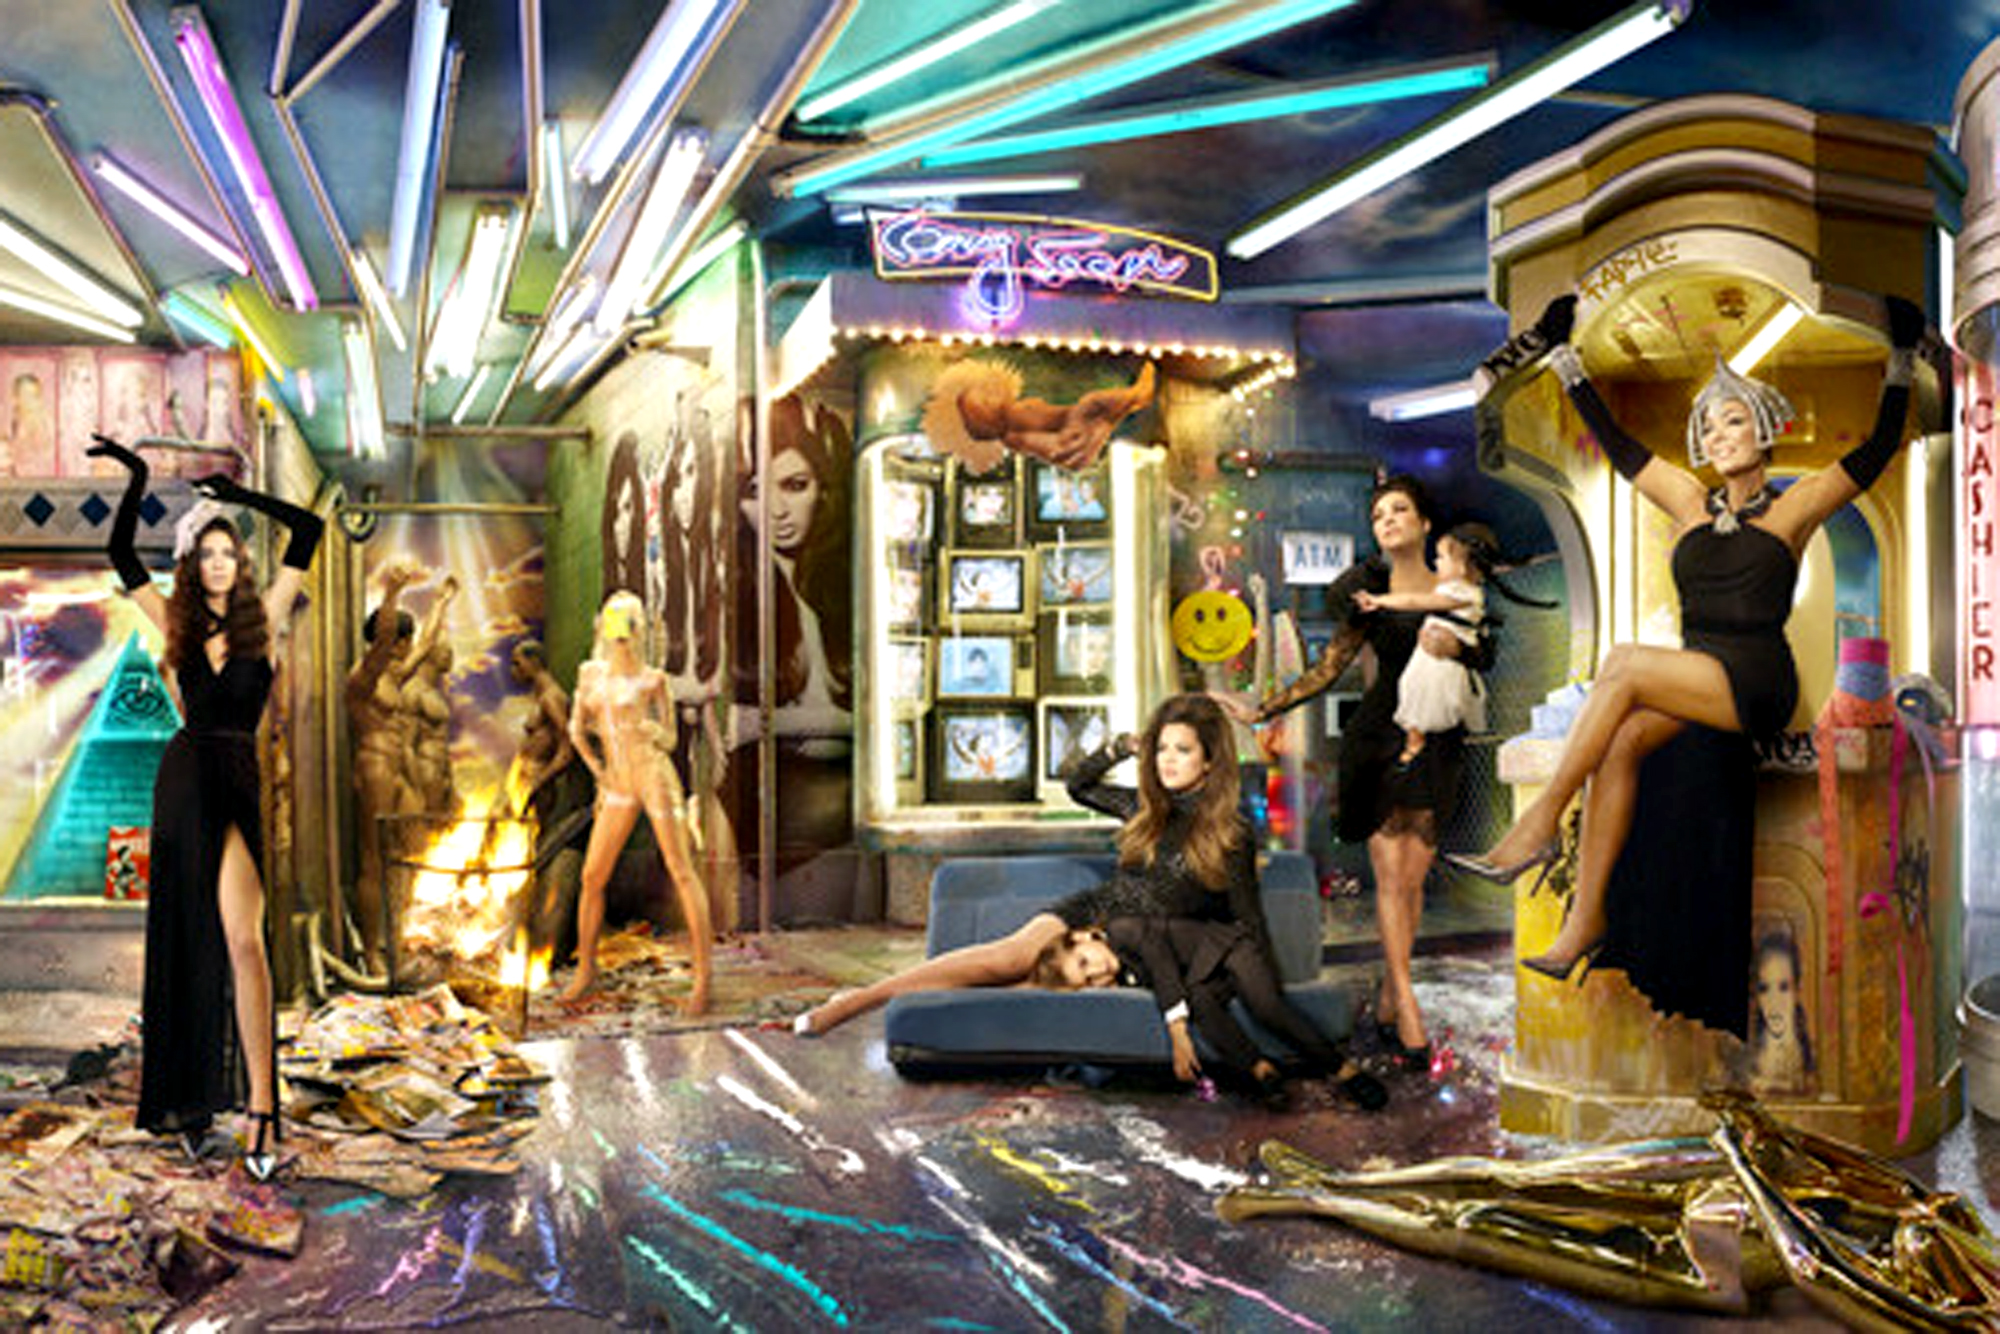 Kardashian Christmas Card 2020 Your guide to the 2013 Kardashian Christmas card